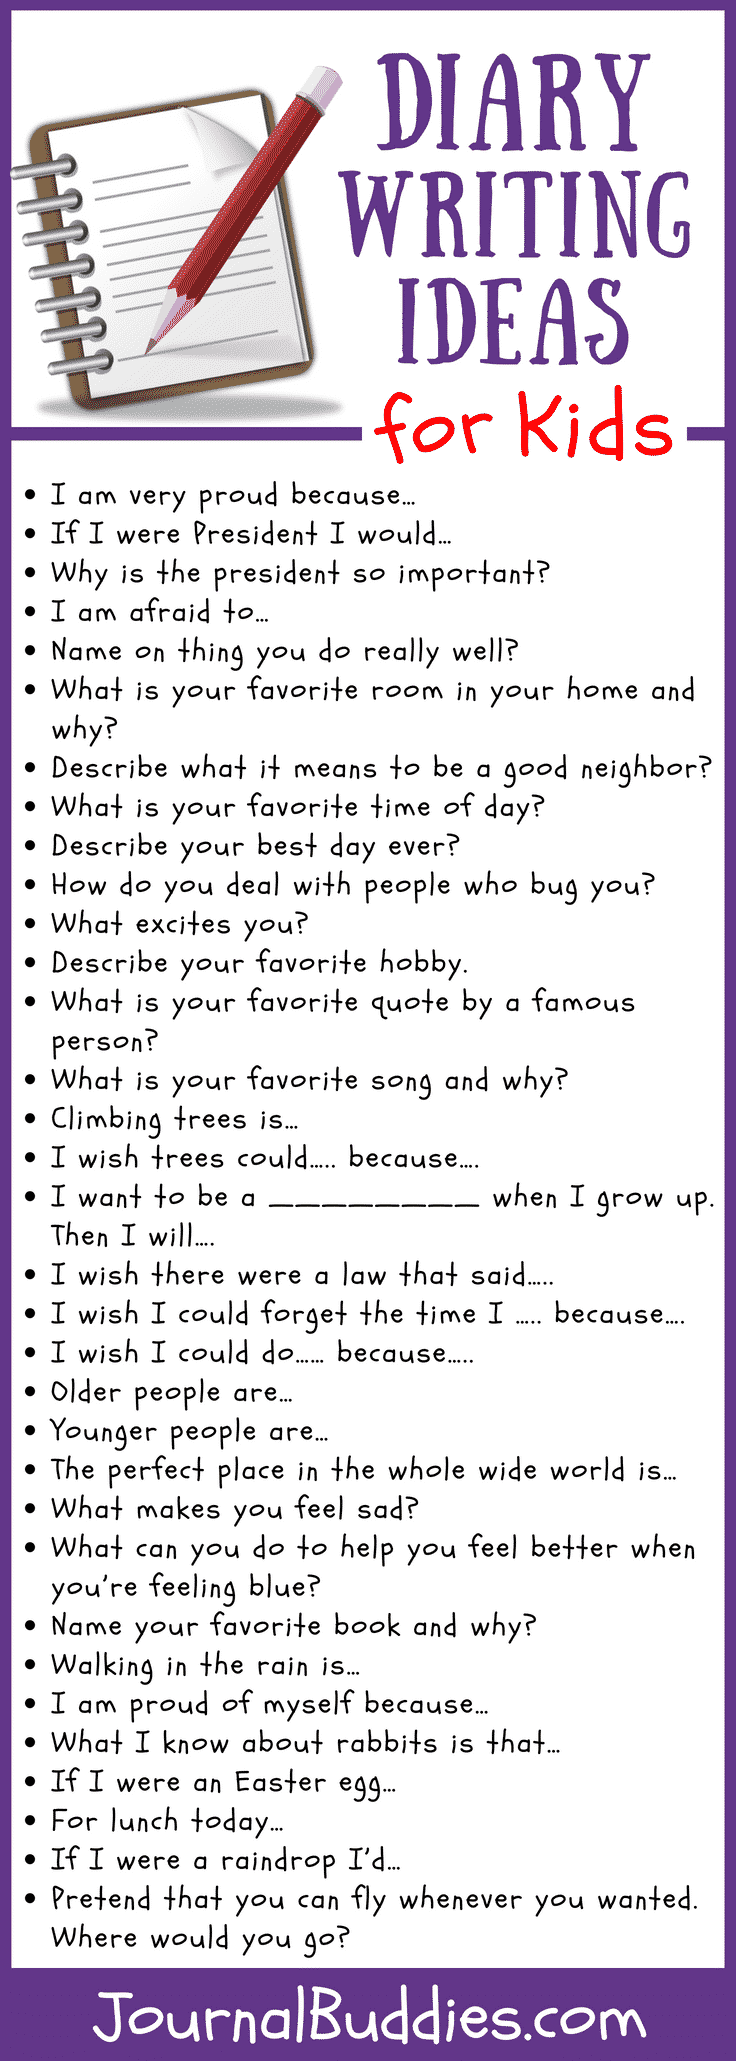 Diary Writing Ideas for Kids  Writing prompts for kids, Fun